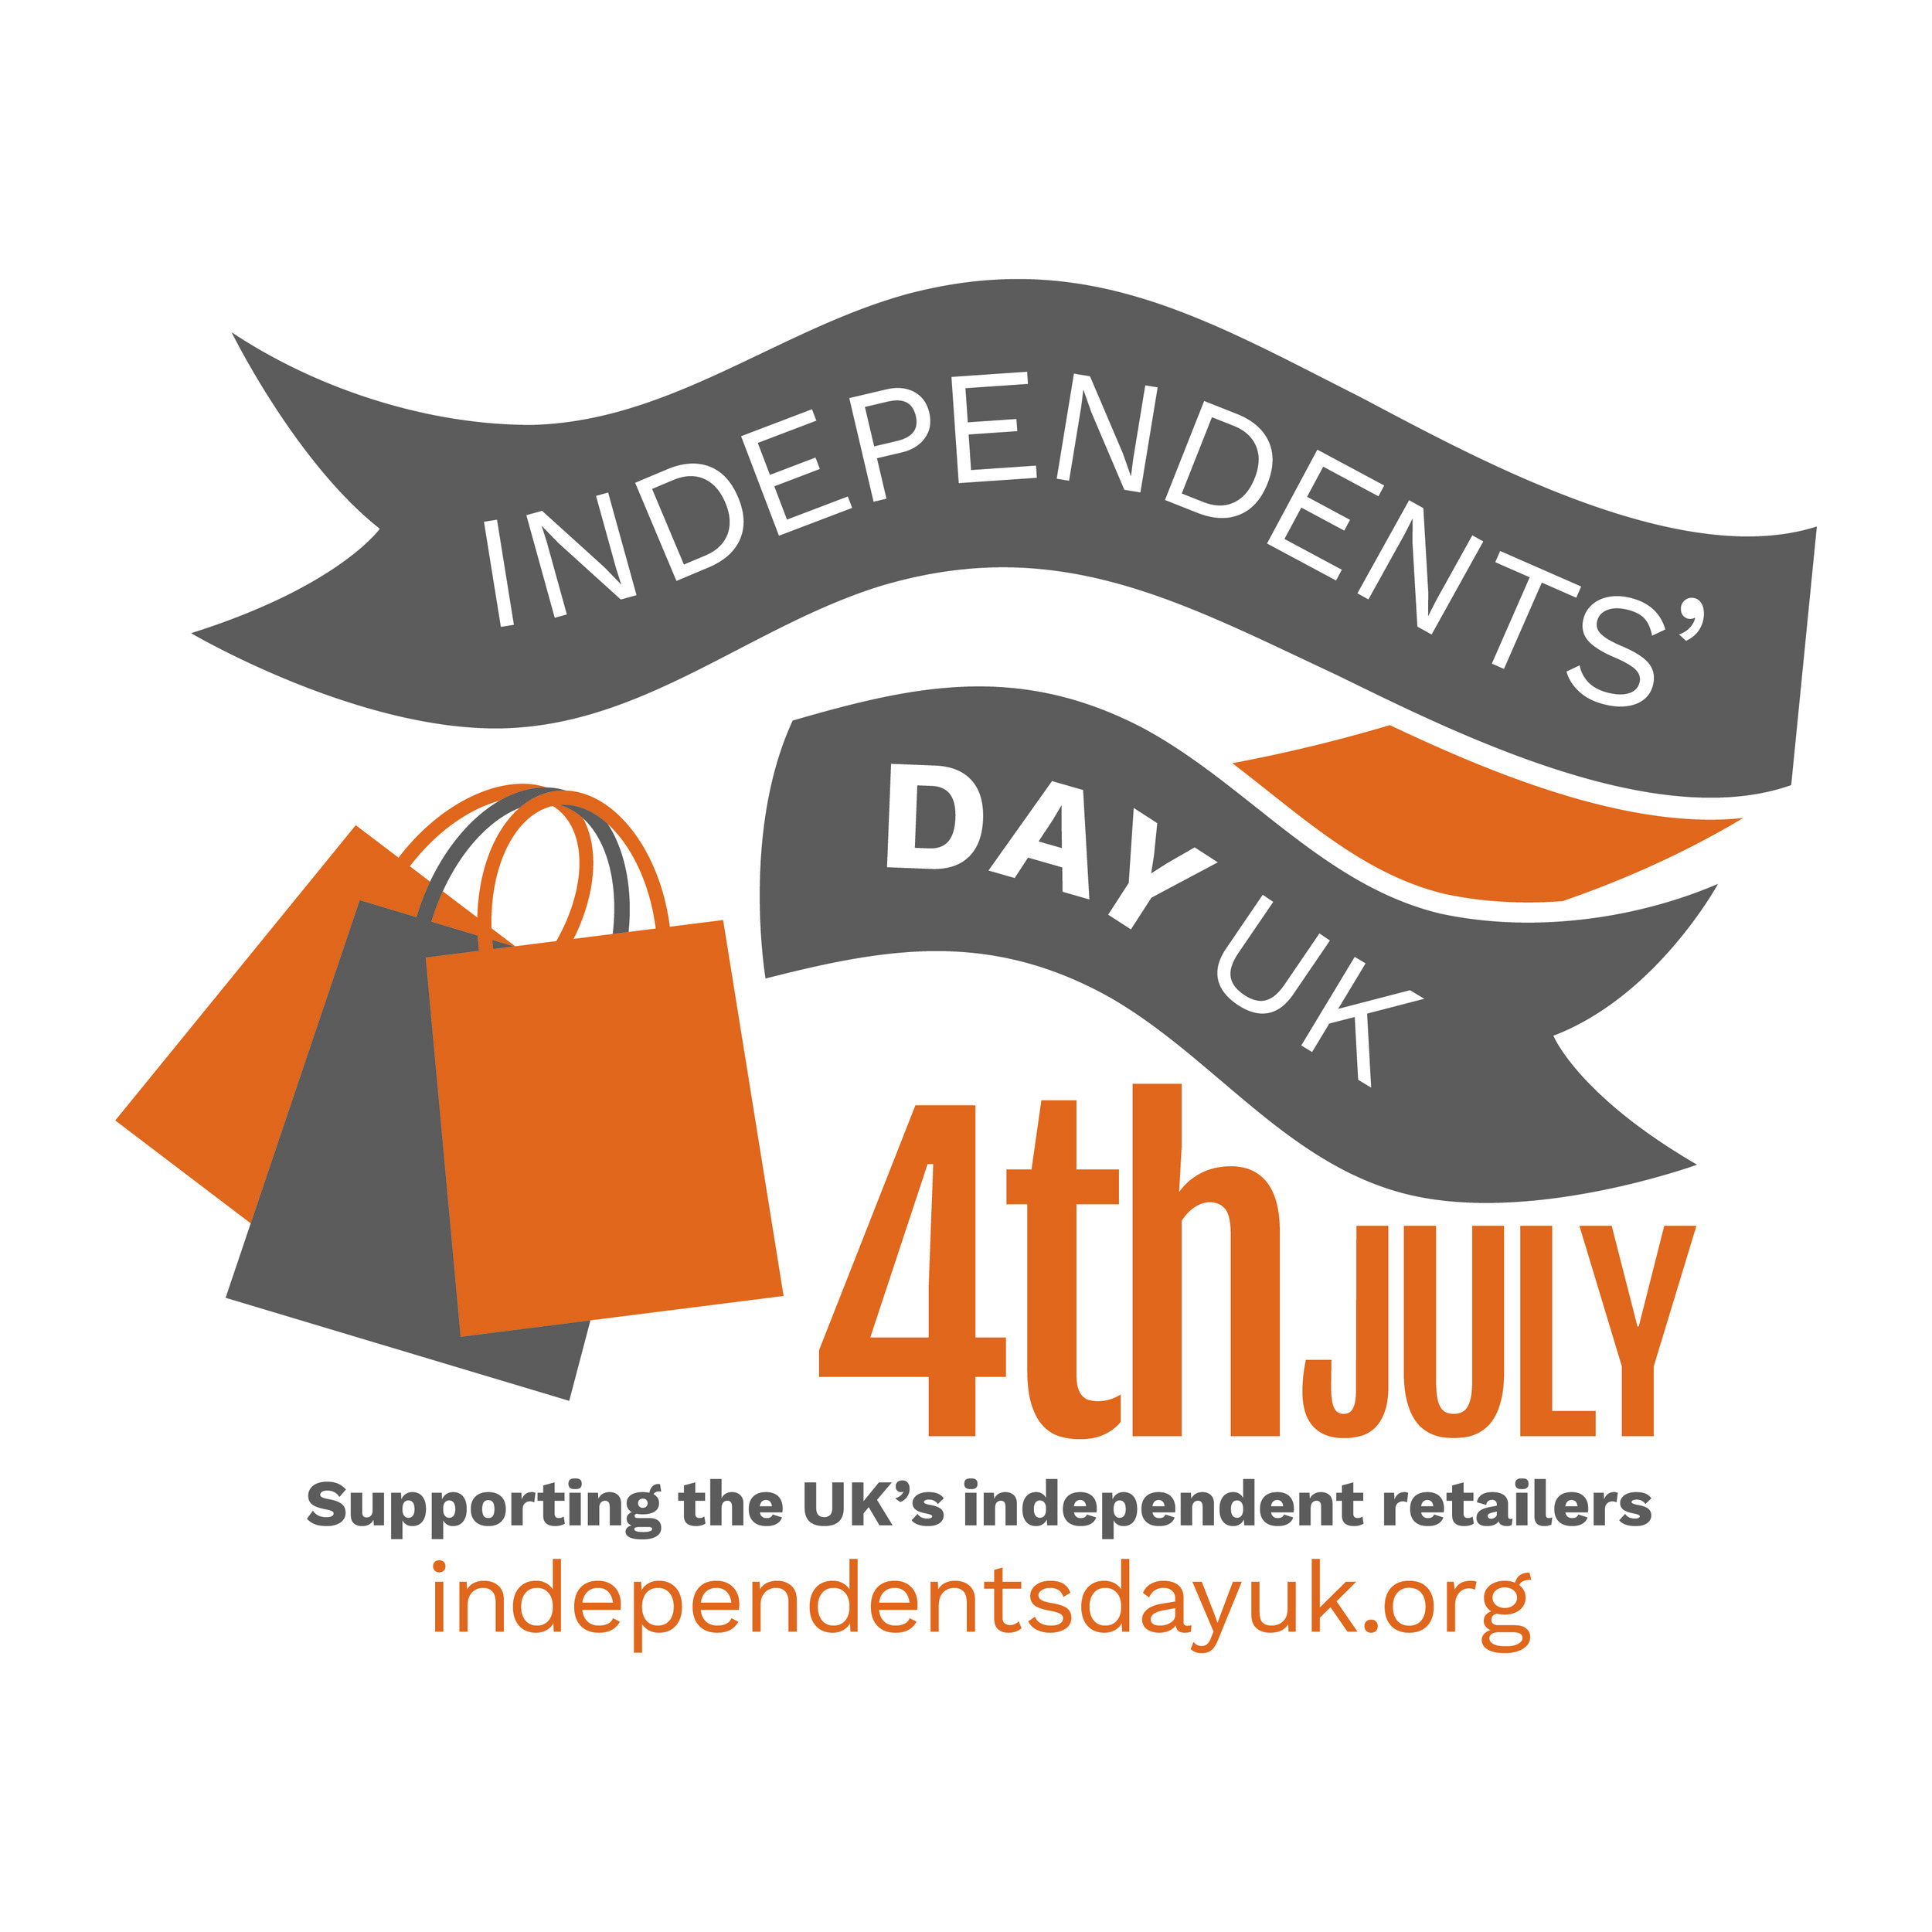 independents+day+branding+FINAL+print.jpg